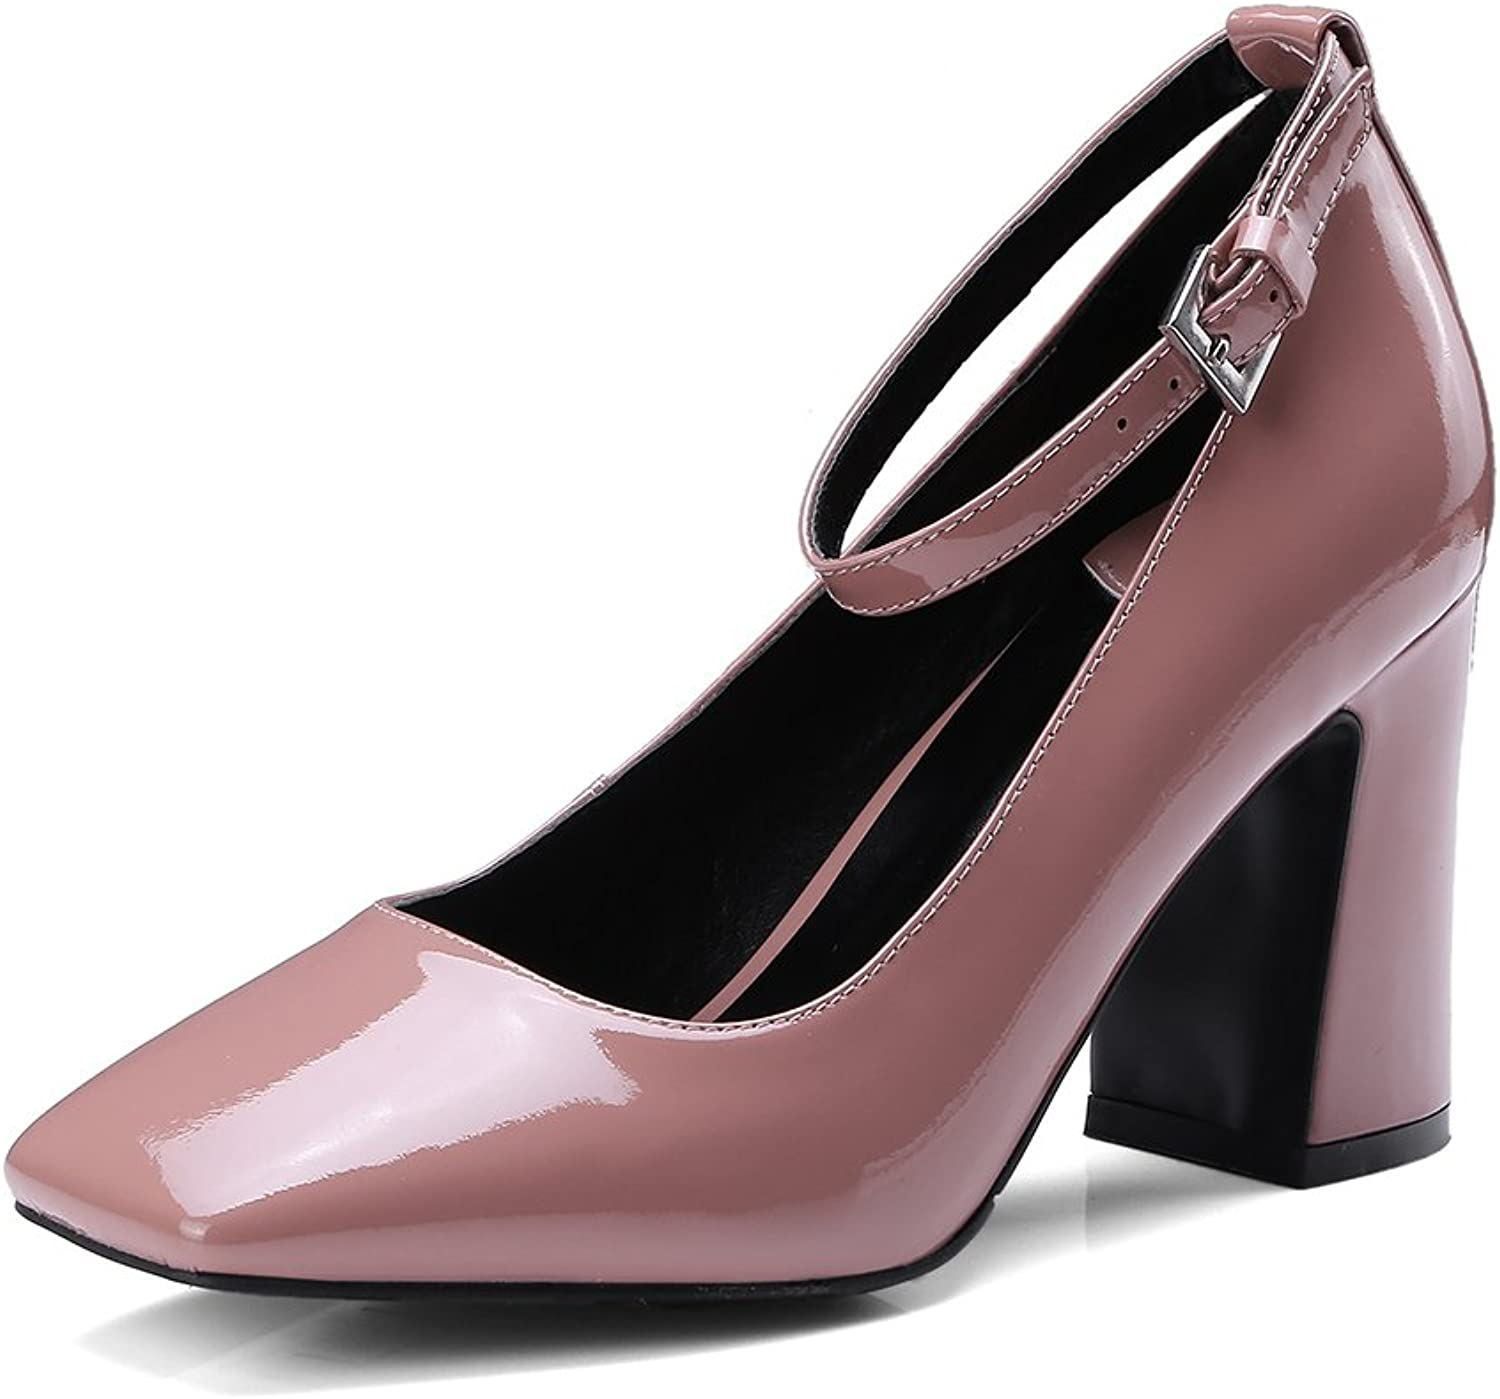 Dulce Diva Patent Leather Square Toe Chunky High Heel Ankle-Strap Pump shoes for Women Office